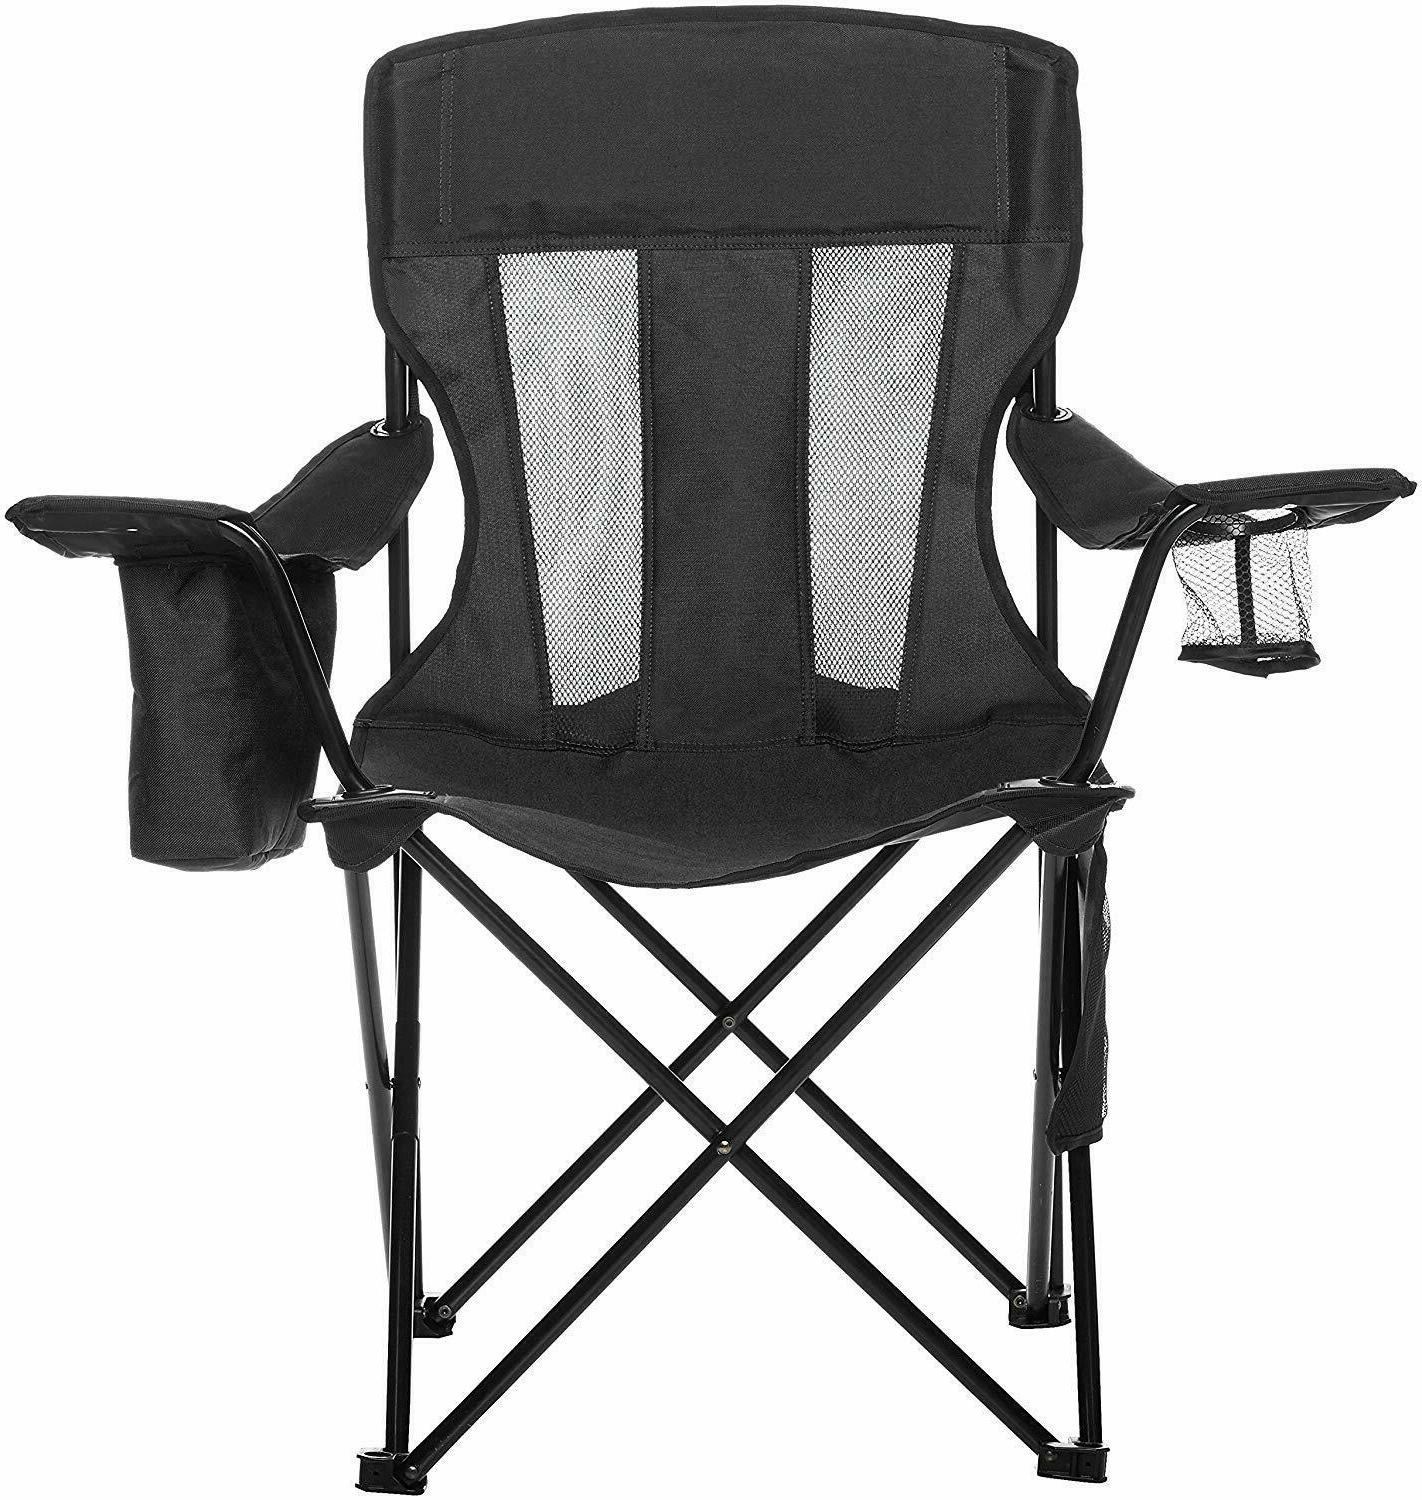 Heavy Duty Camping Chair Mesh Portable Folding Beach